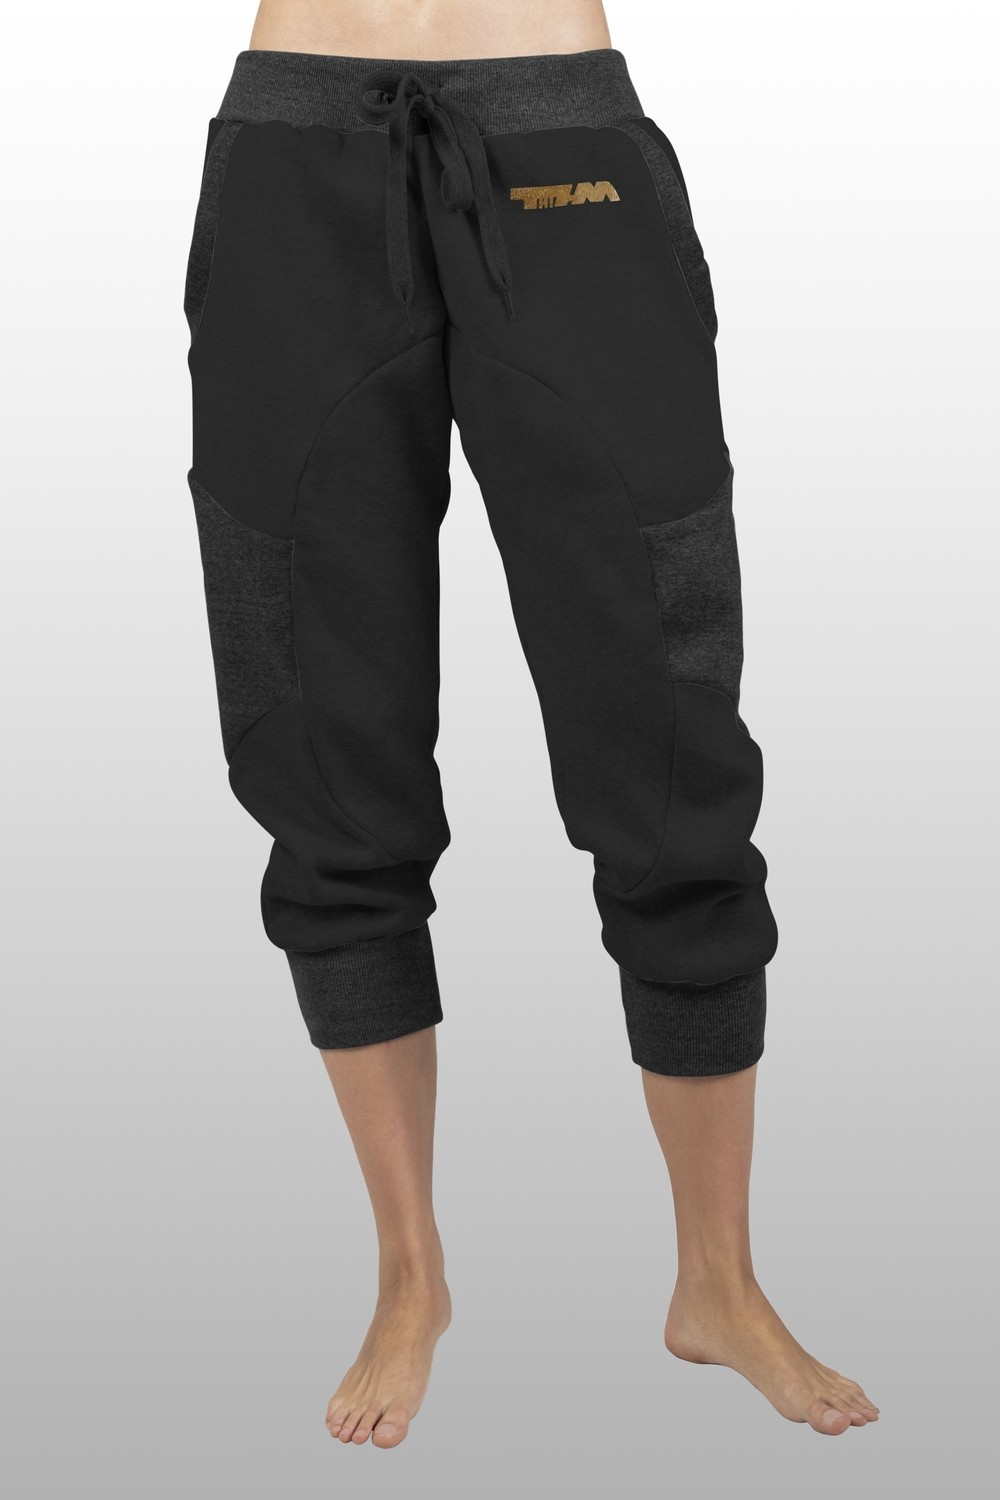 2xME unisex 3/4 pants anthracite